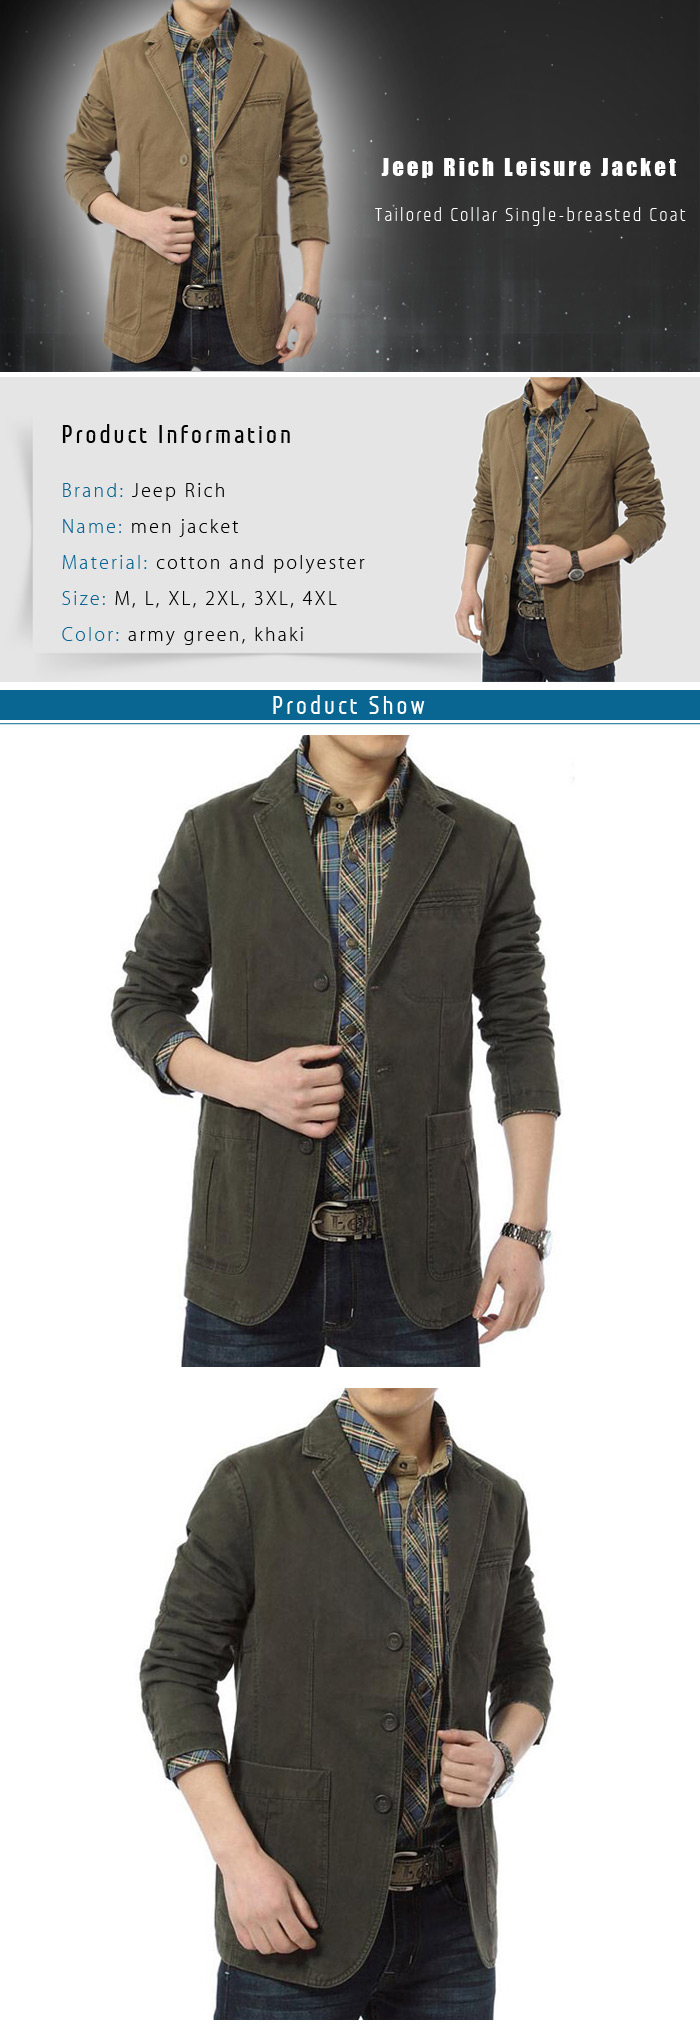 Jeep Rich Tailored Collar Single-breasted Leisure Jacket